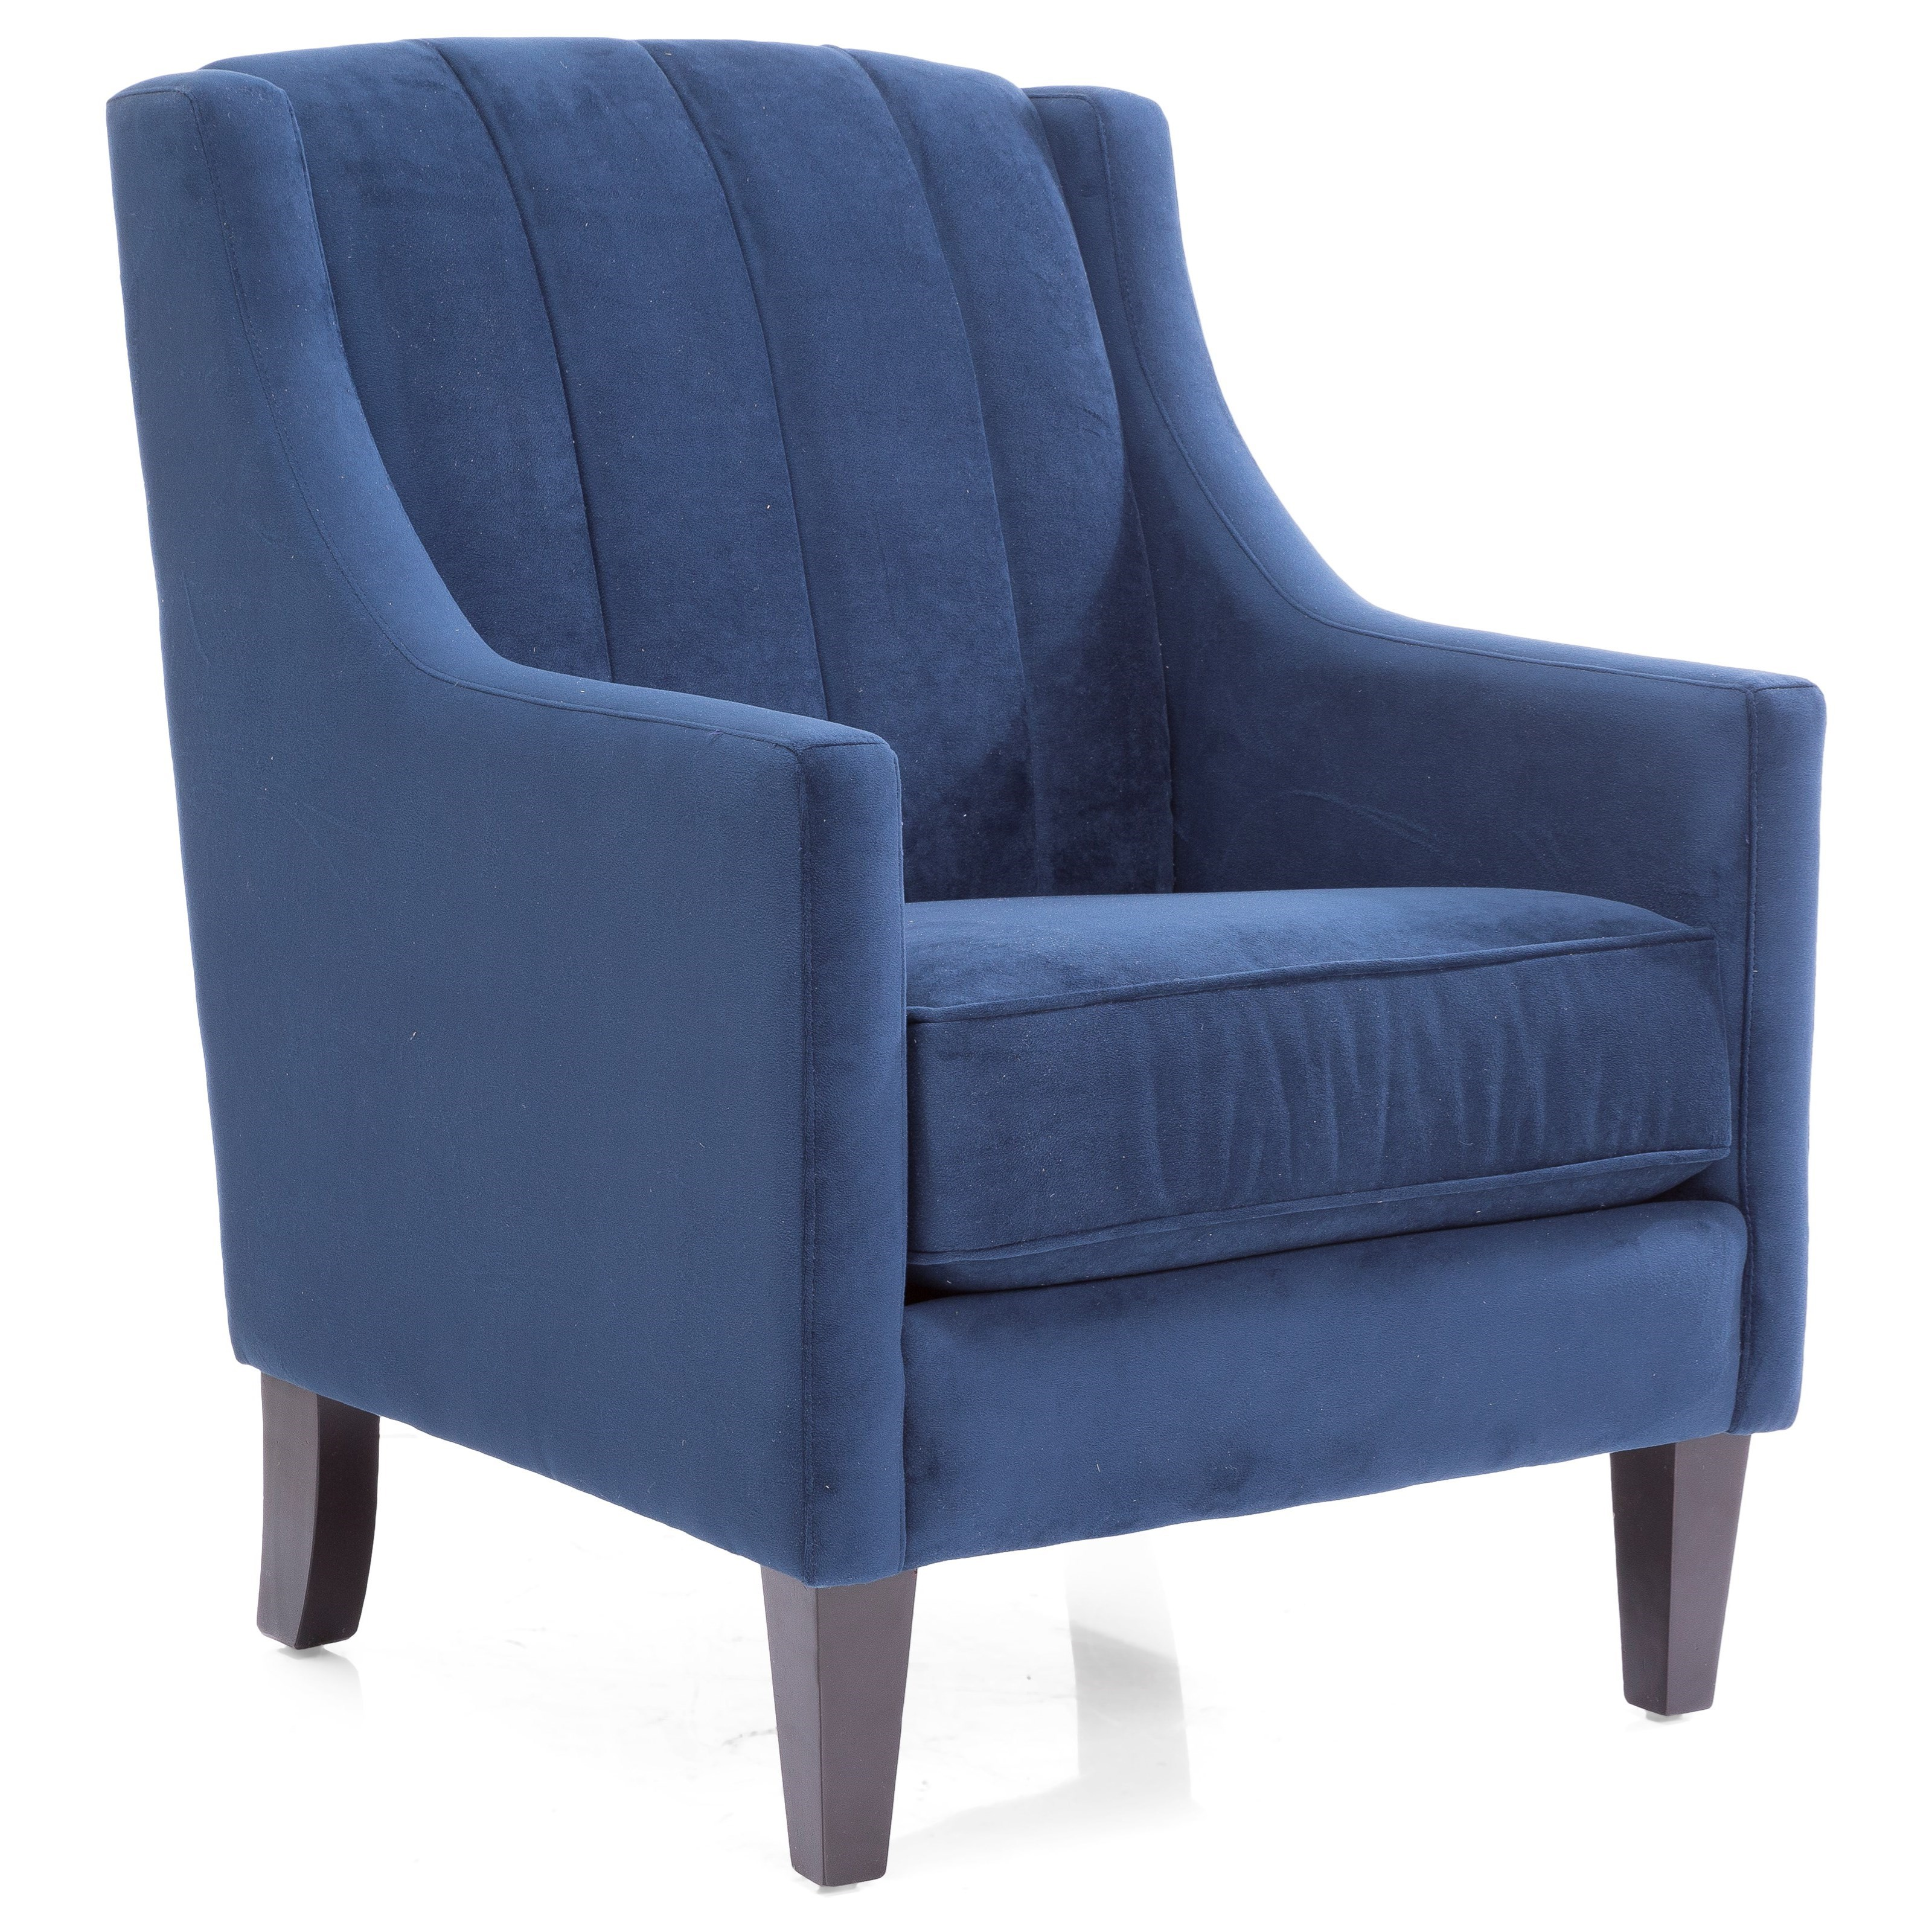 7706 Chair by Decor-Rest at Johnny Janosik